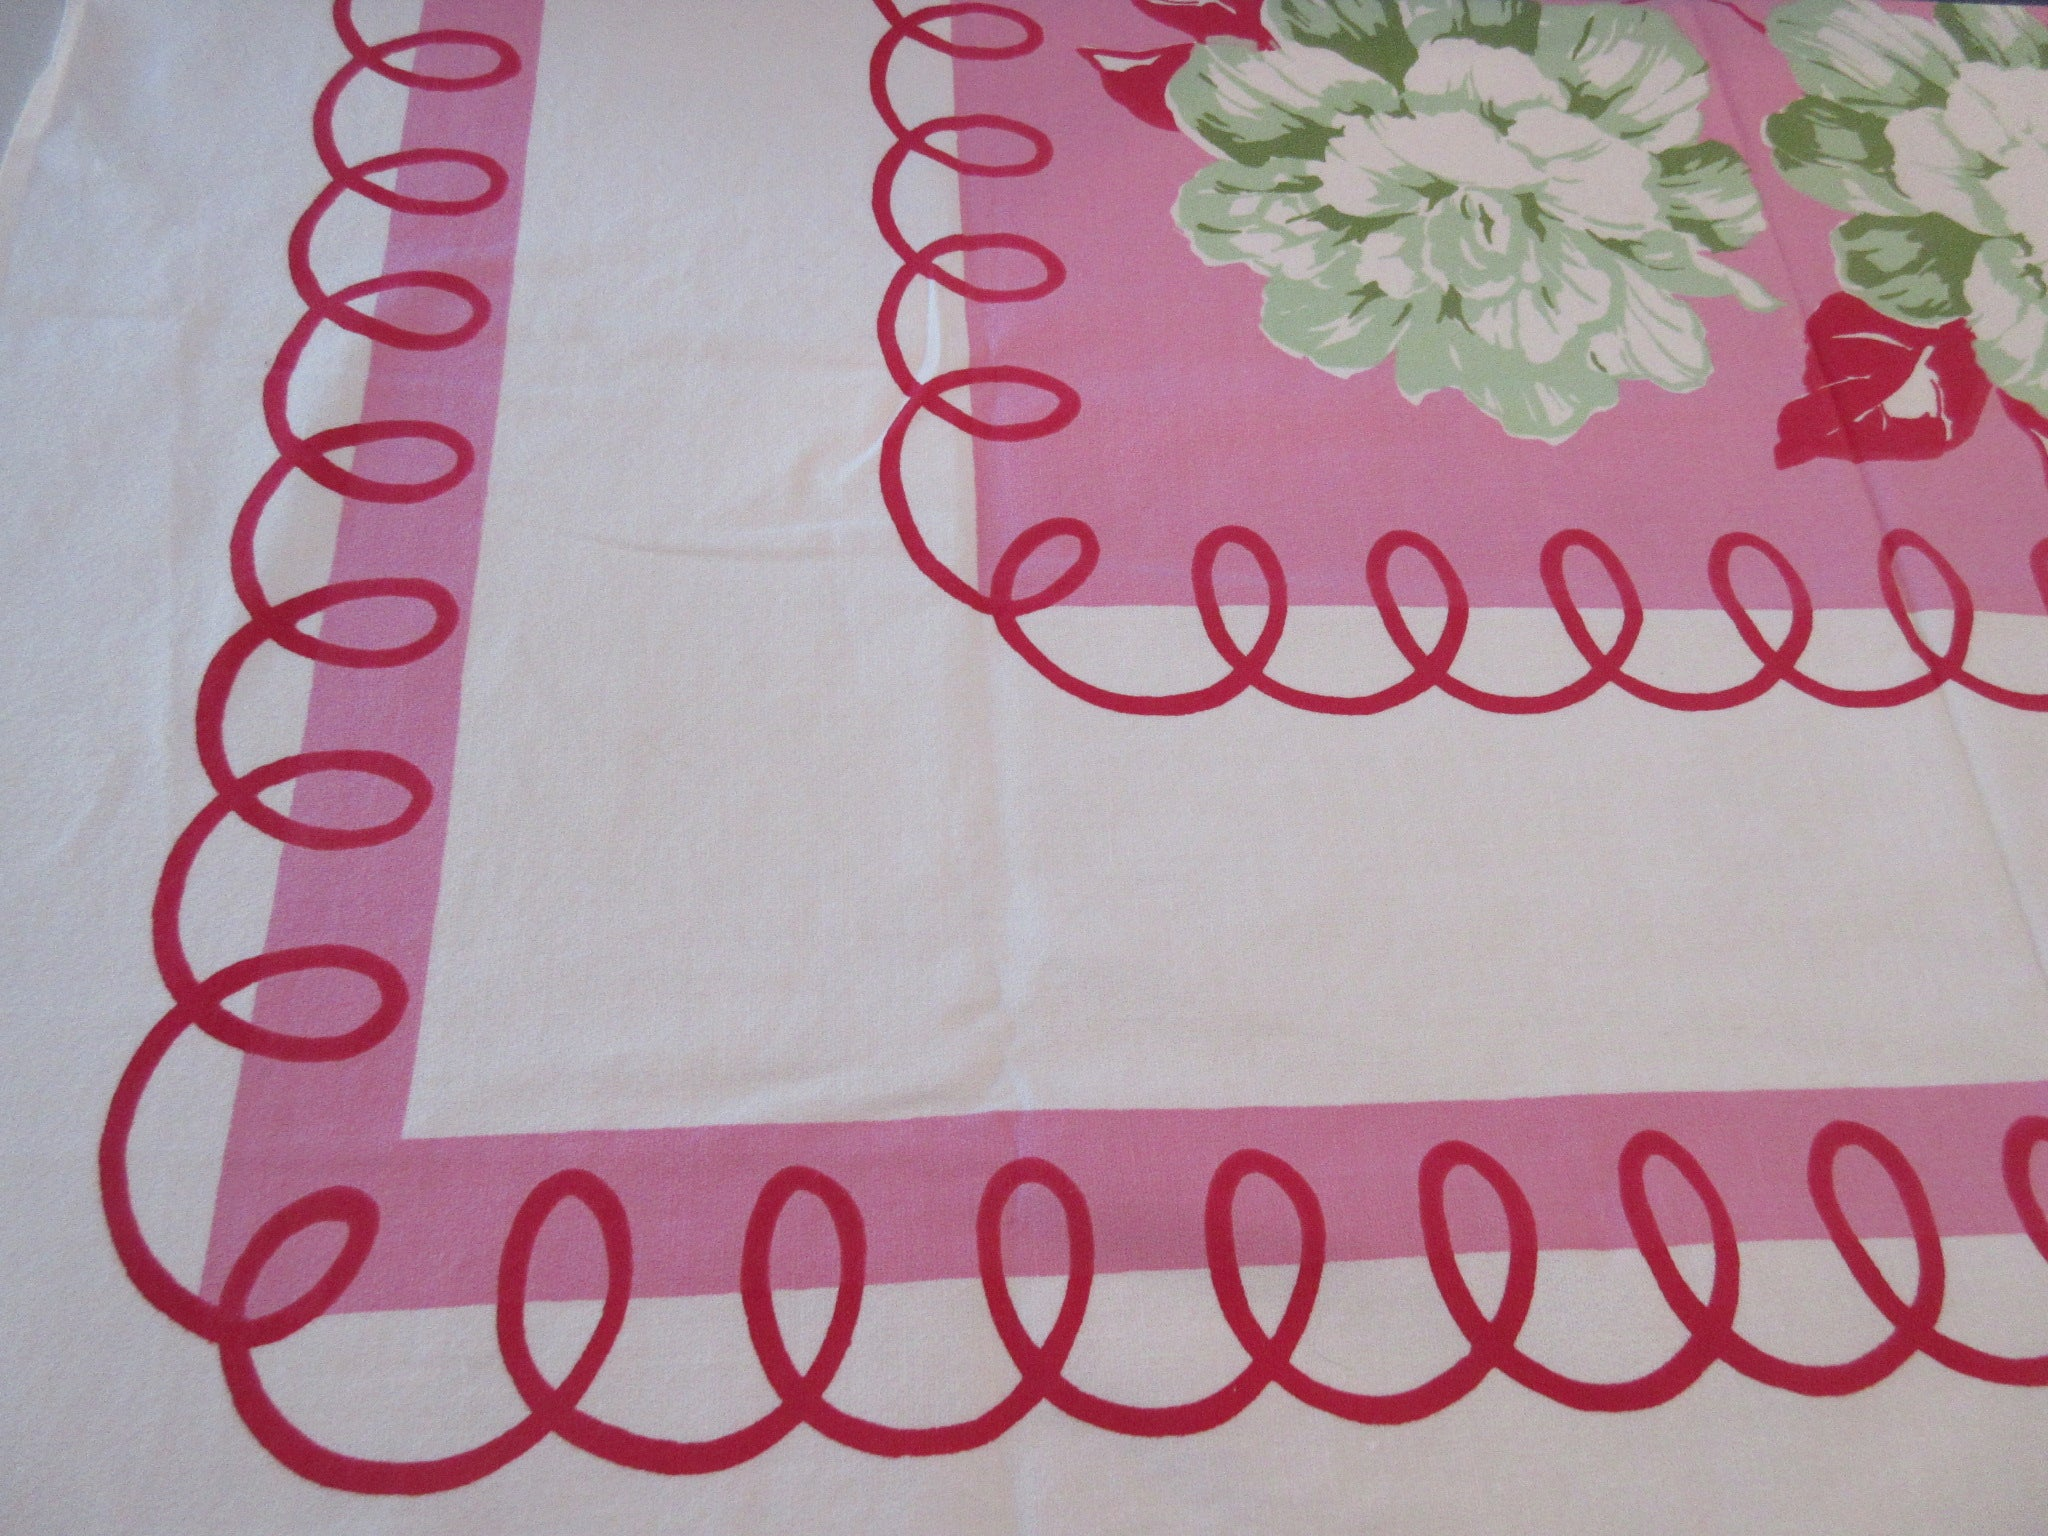 Giant Begonias on Pink Loopy Floral Vintage Printed Tablecloth (50 X 49)